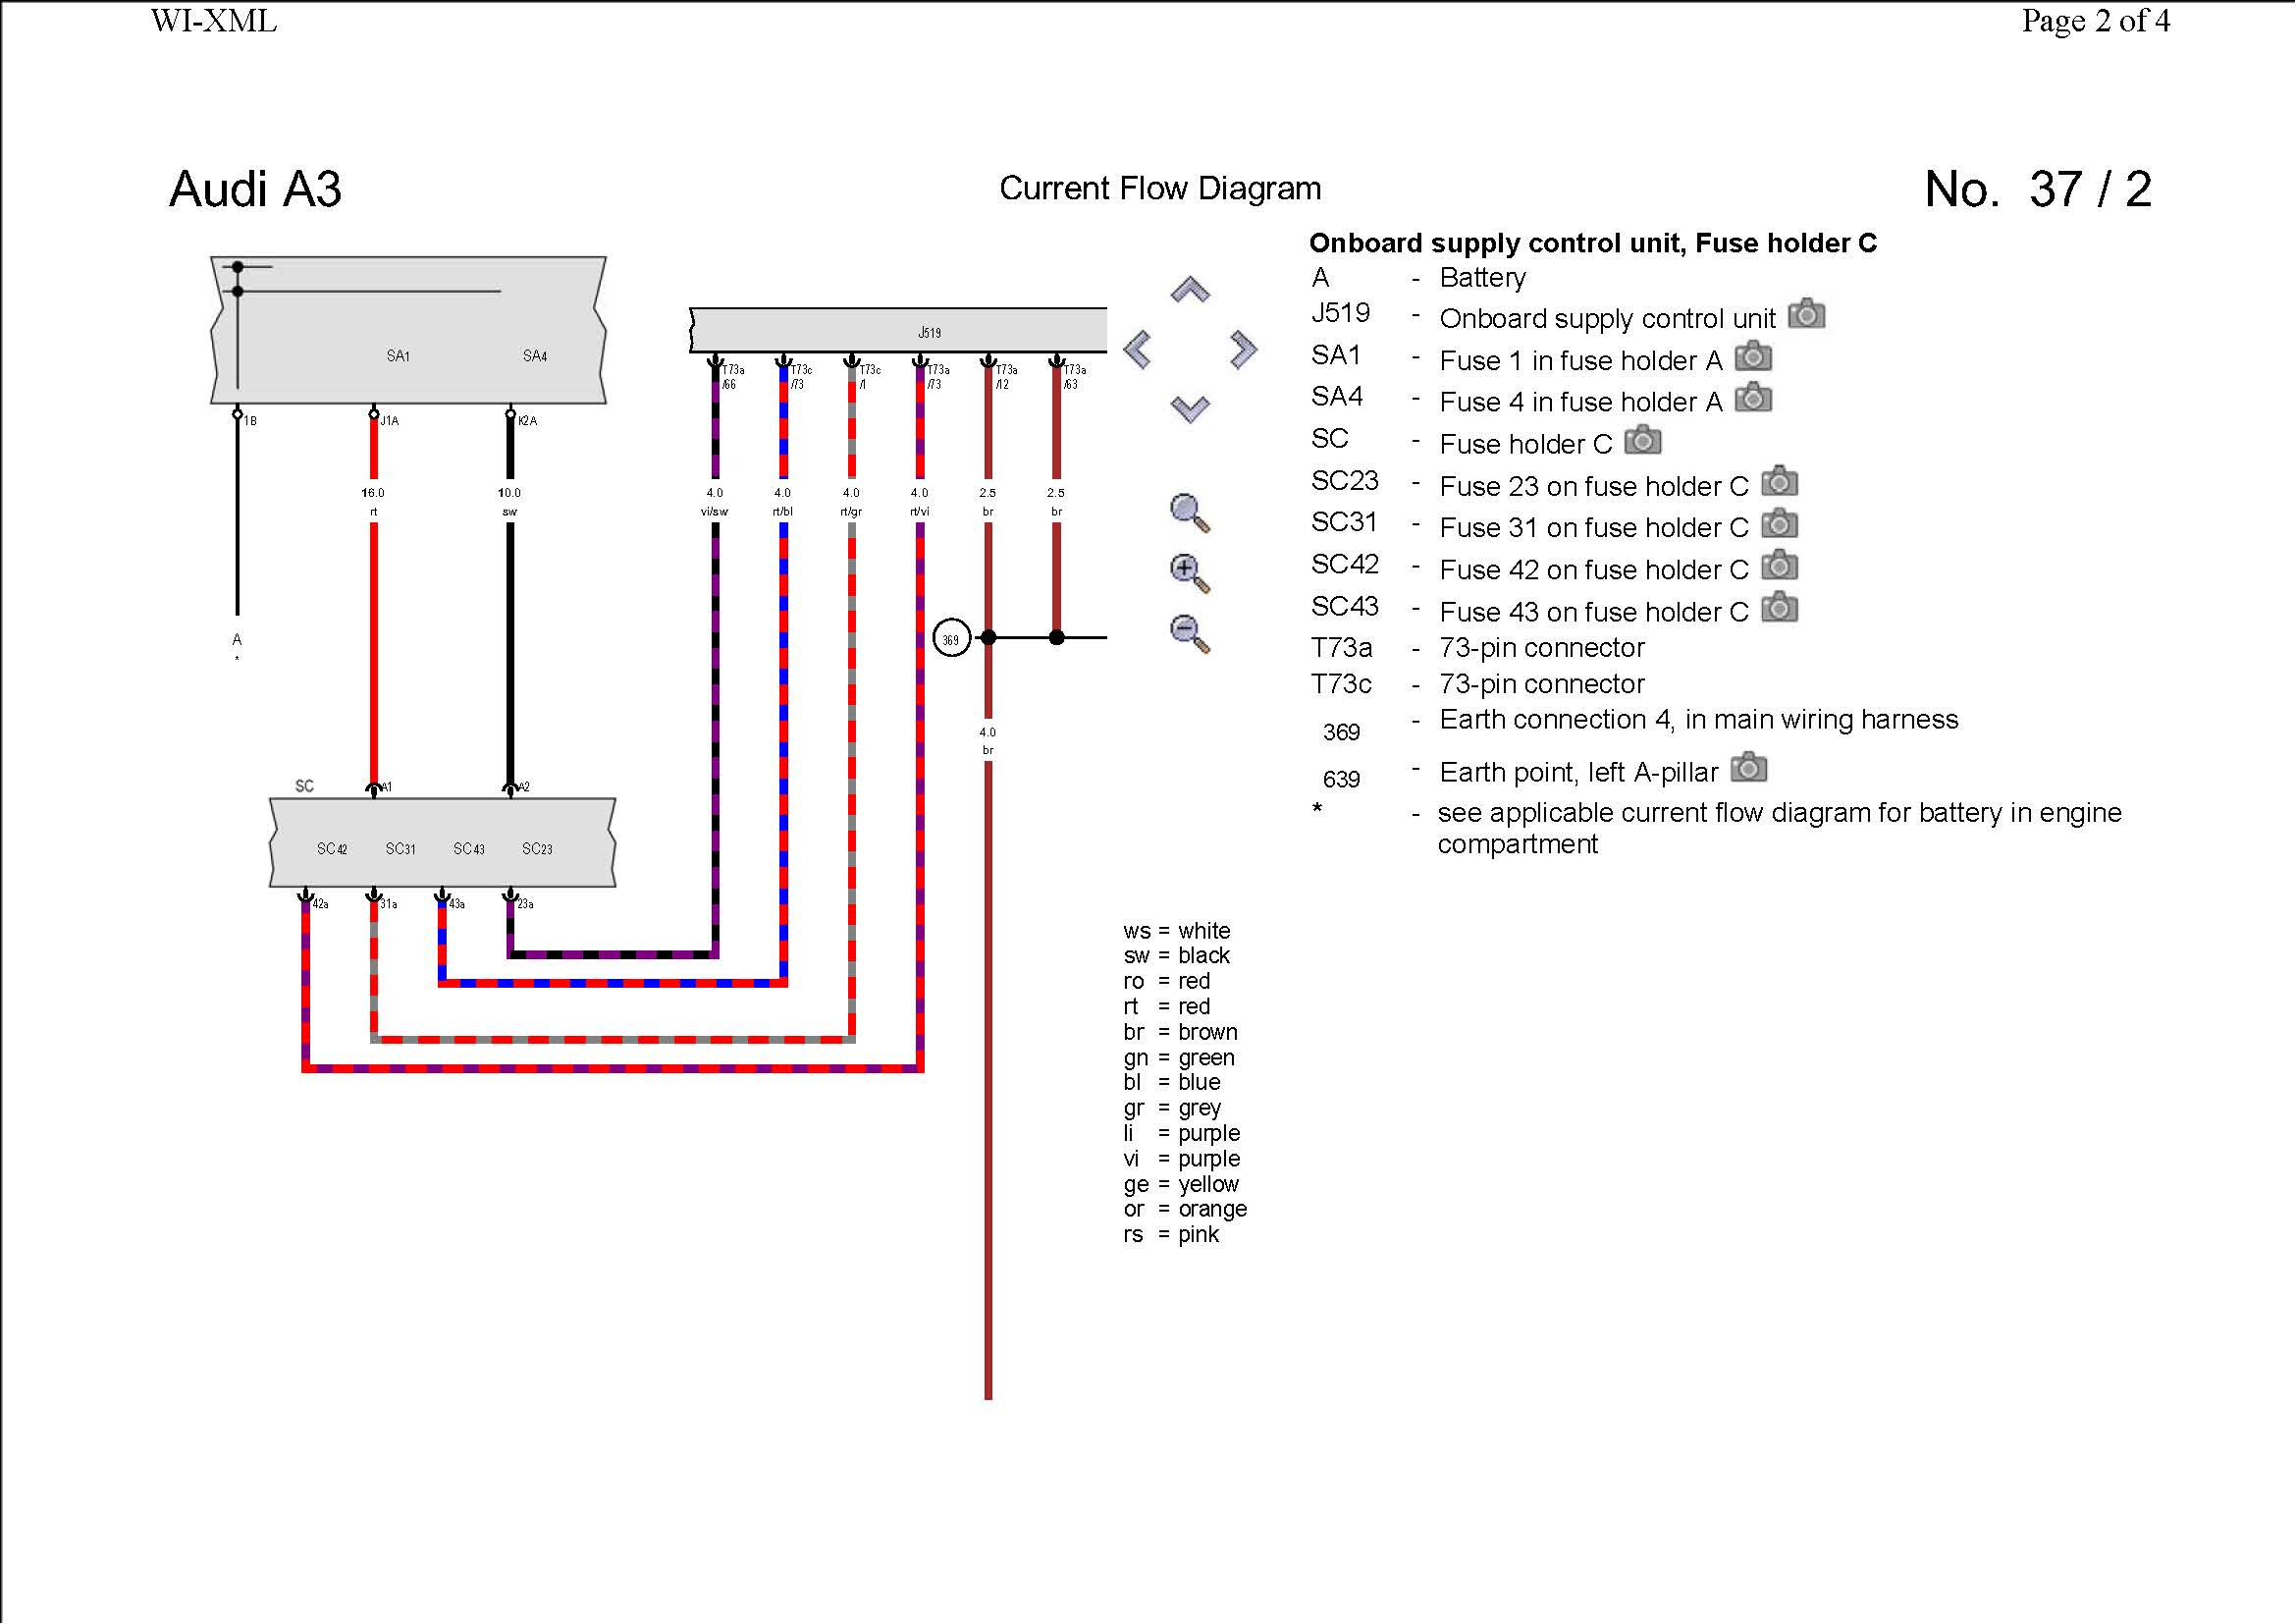 Pin Out / Wiring Diagram (Rear LED cluster) | Audi-Sport net